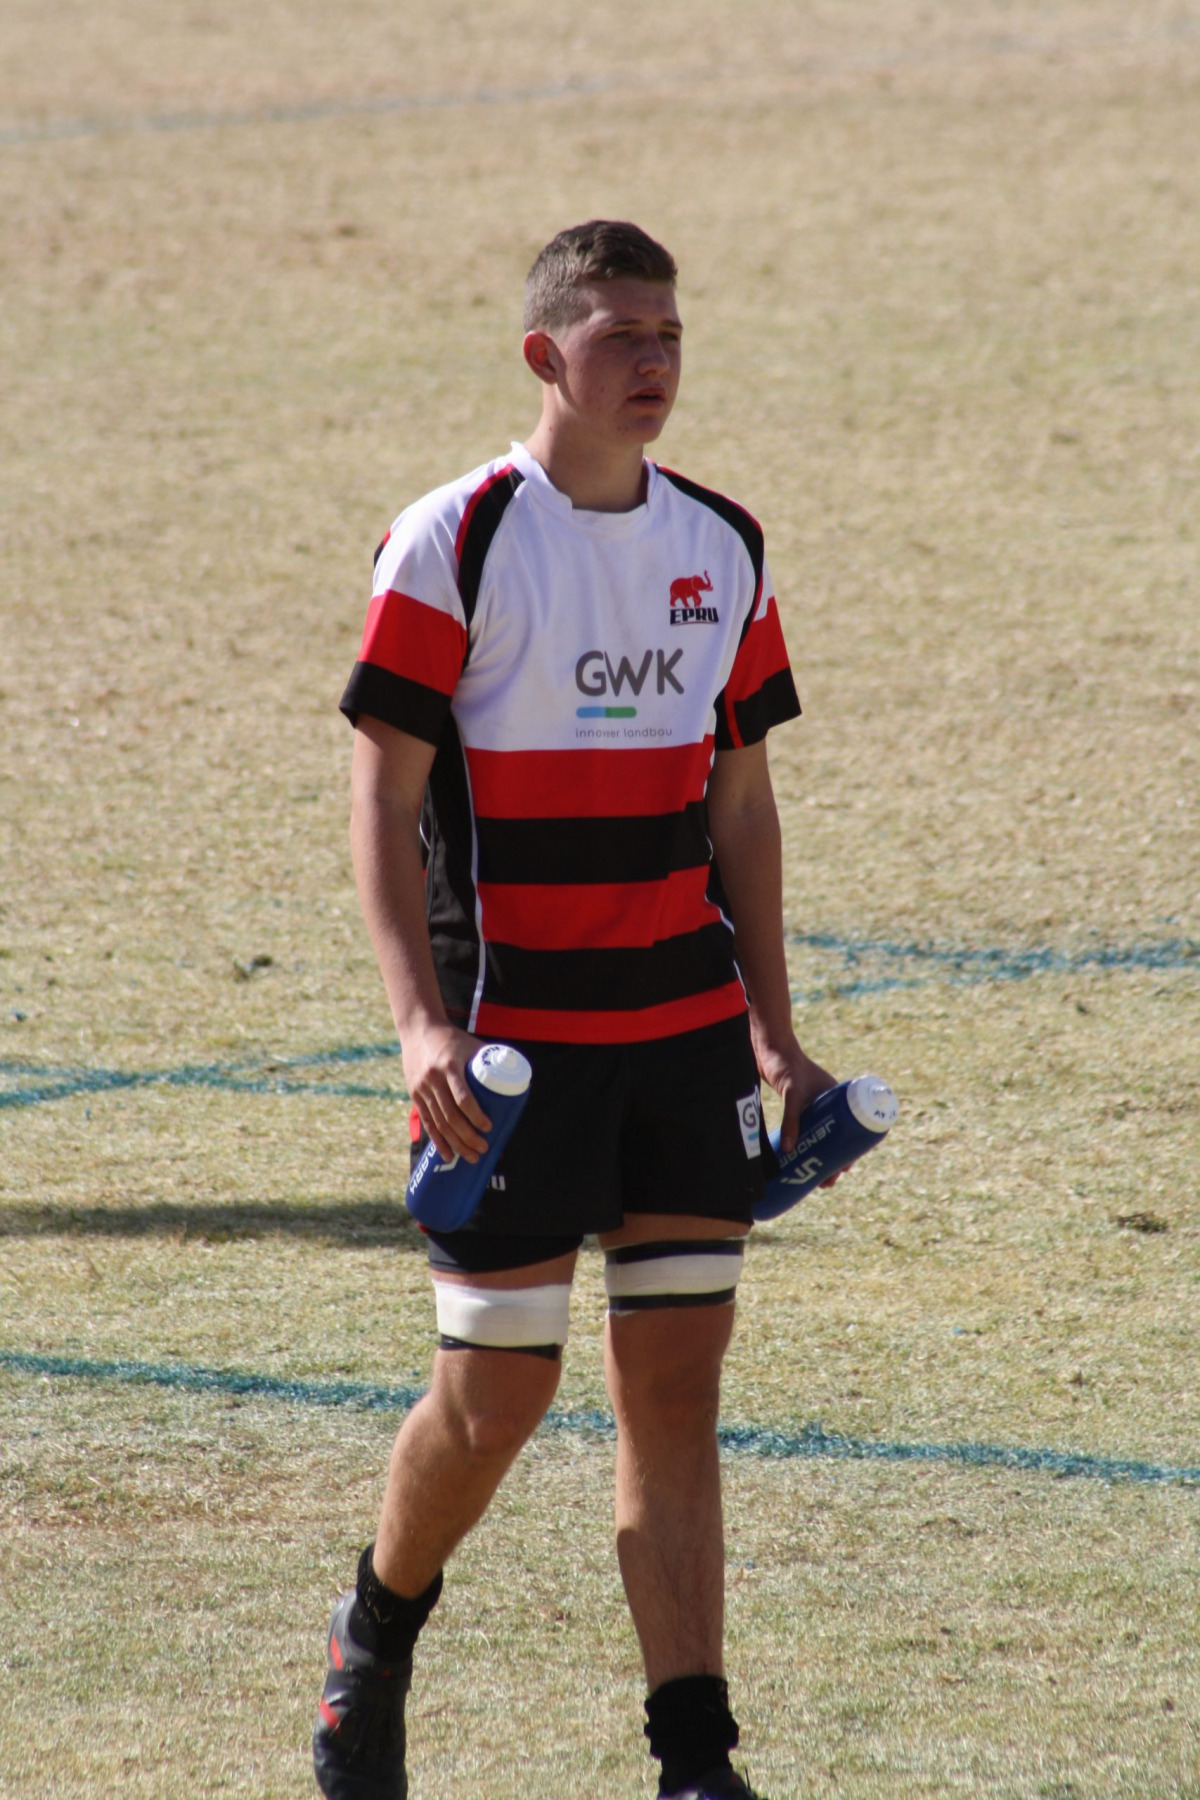 Wessel on the rugby field in his EP kit